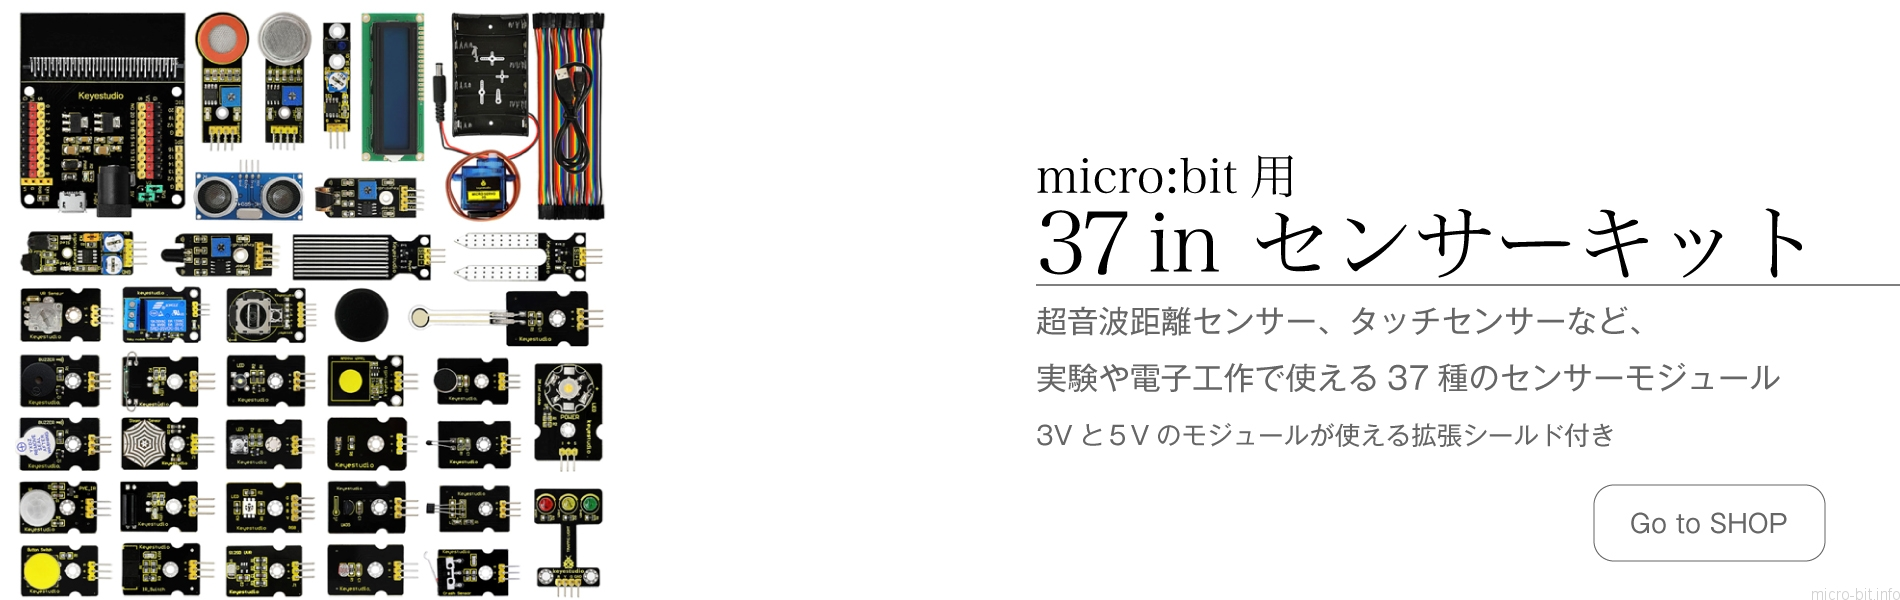 37 in 1 micro:bitスターターキット